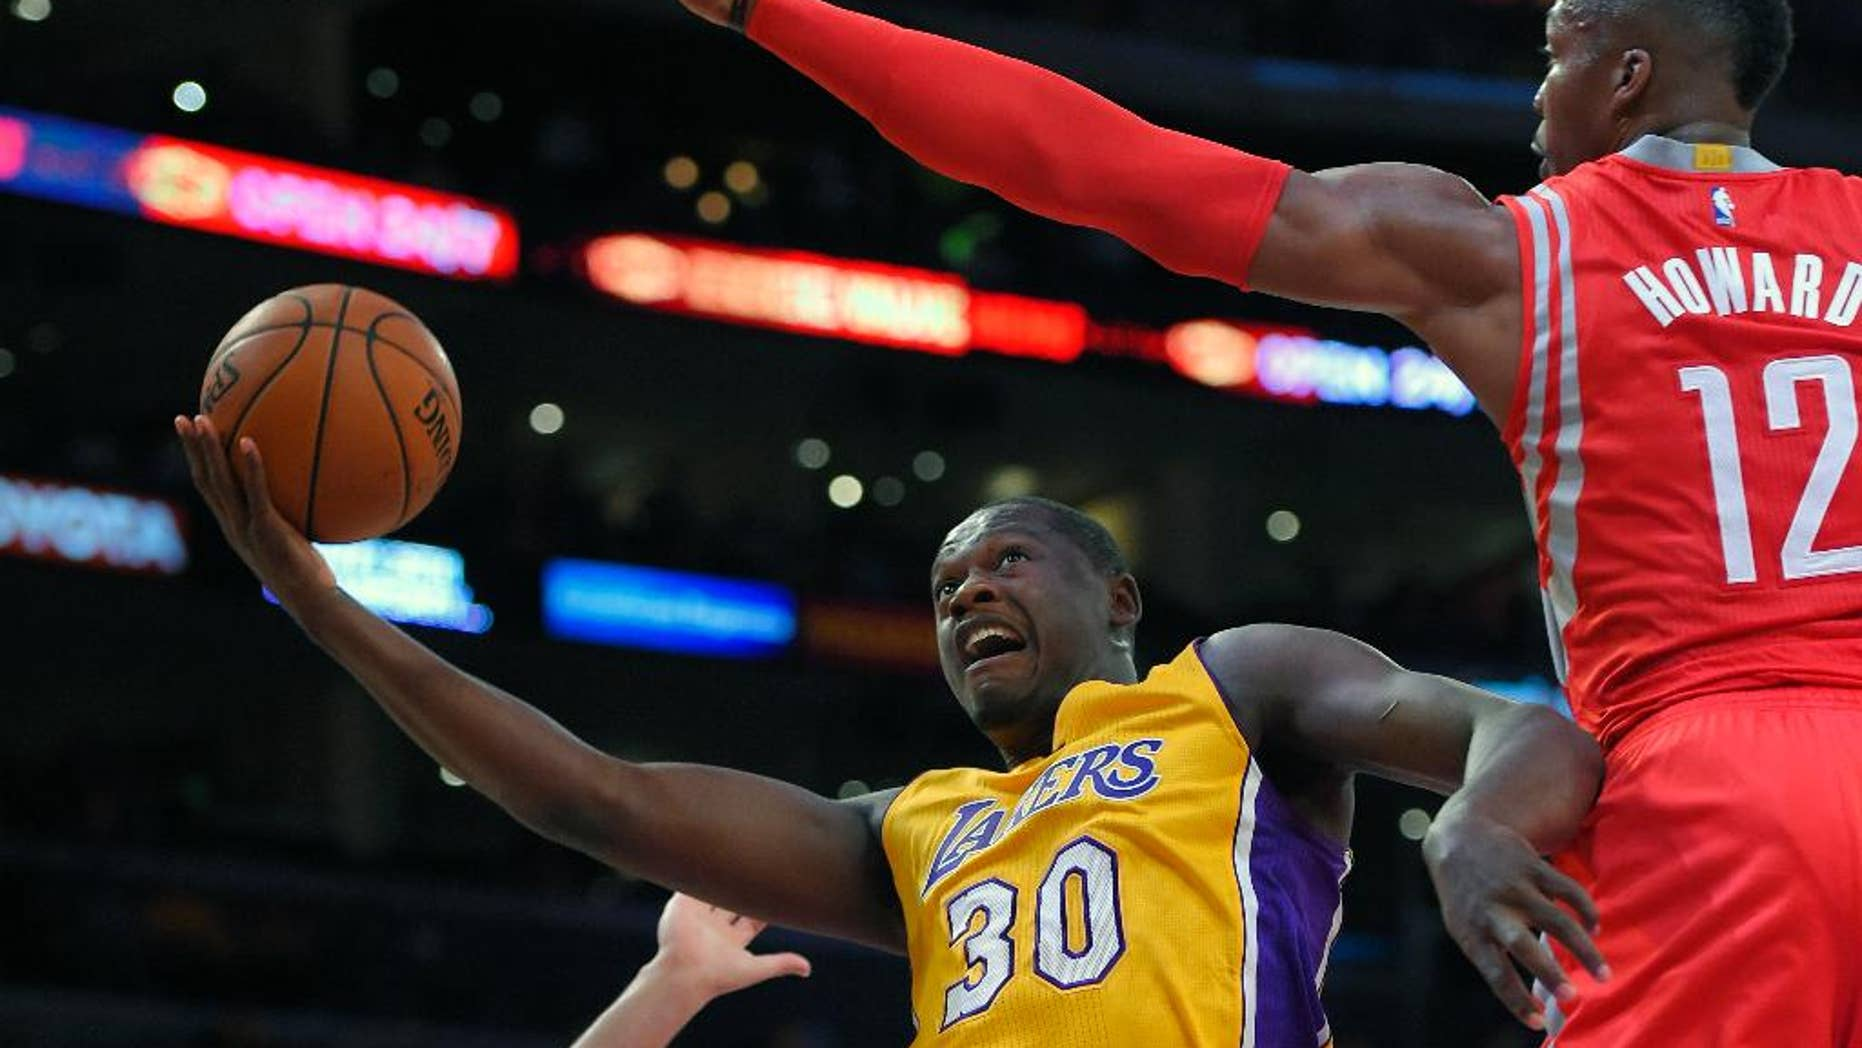 Los Angeles Lakers forward Julius Randle, left, puts up a shot as Houston Rockets center Dwight Howard defends during the first half of an NBA basketball game, Tuesday, Oct. 28, 2014, in Los Angeles. (AP Photo/Mark J. Terrill)